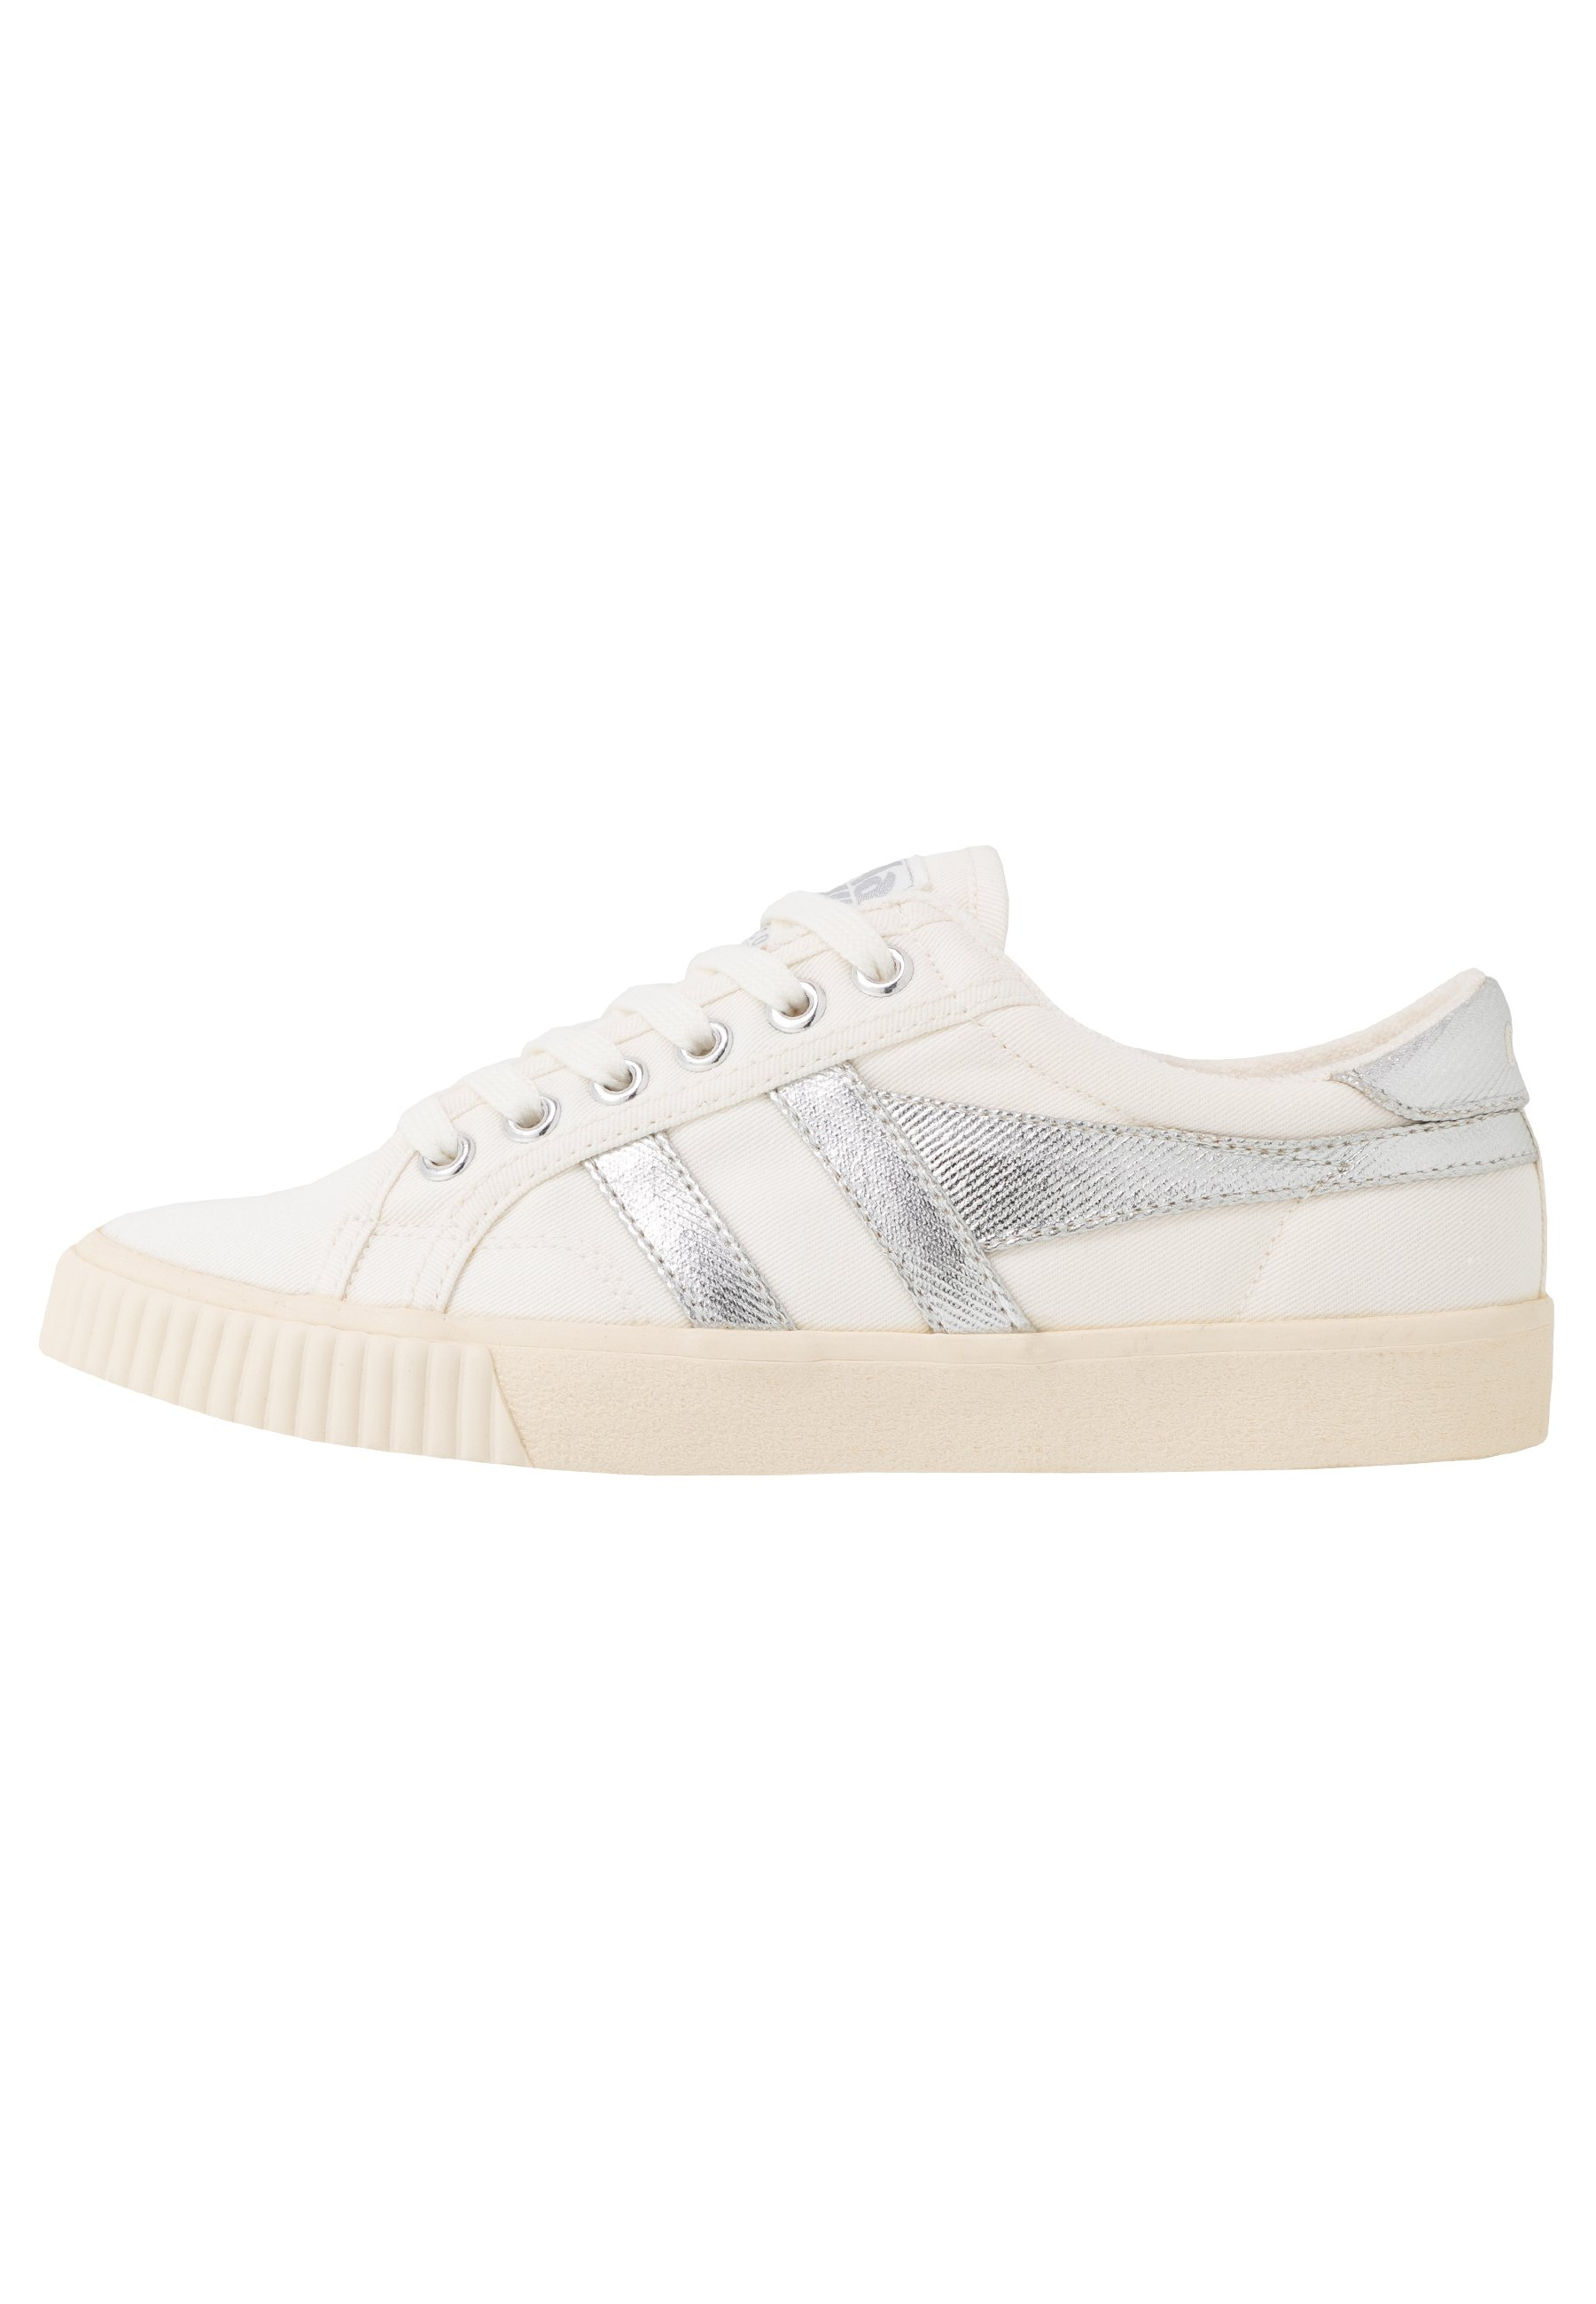 Gola TENNIS MARK COX - Sneaker low - off white/silver jhYUpH